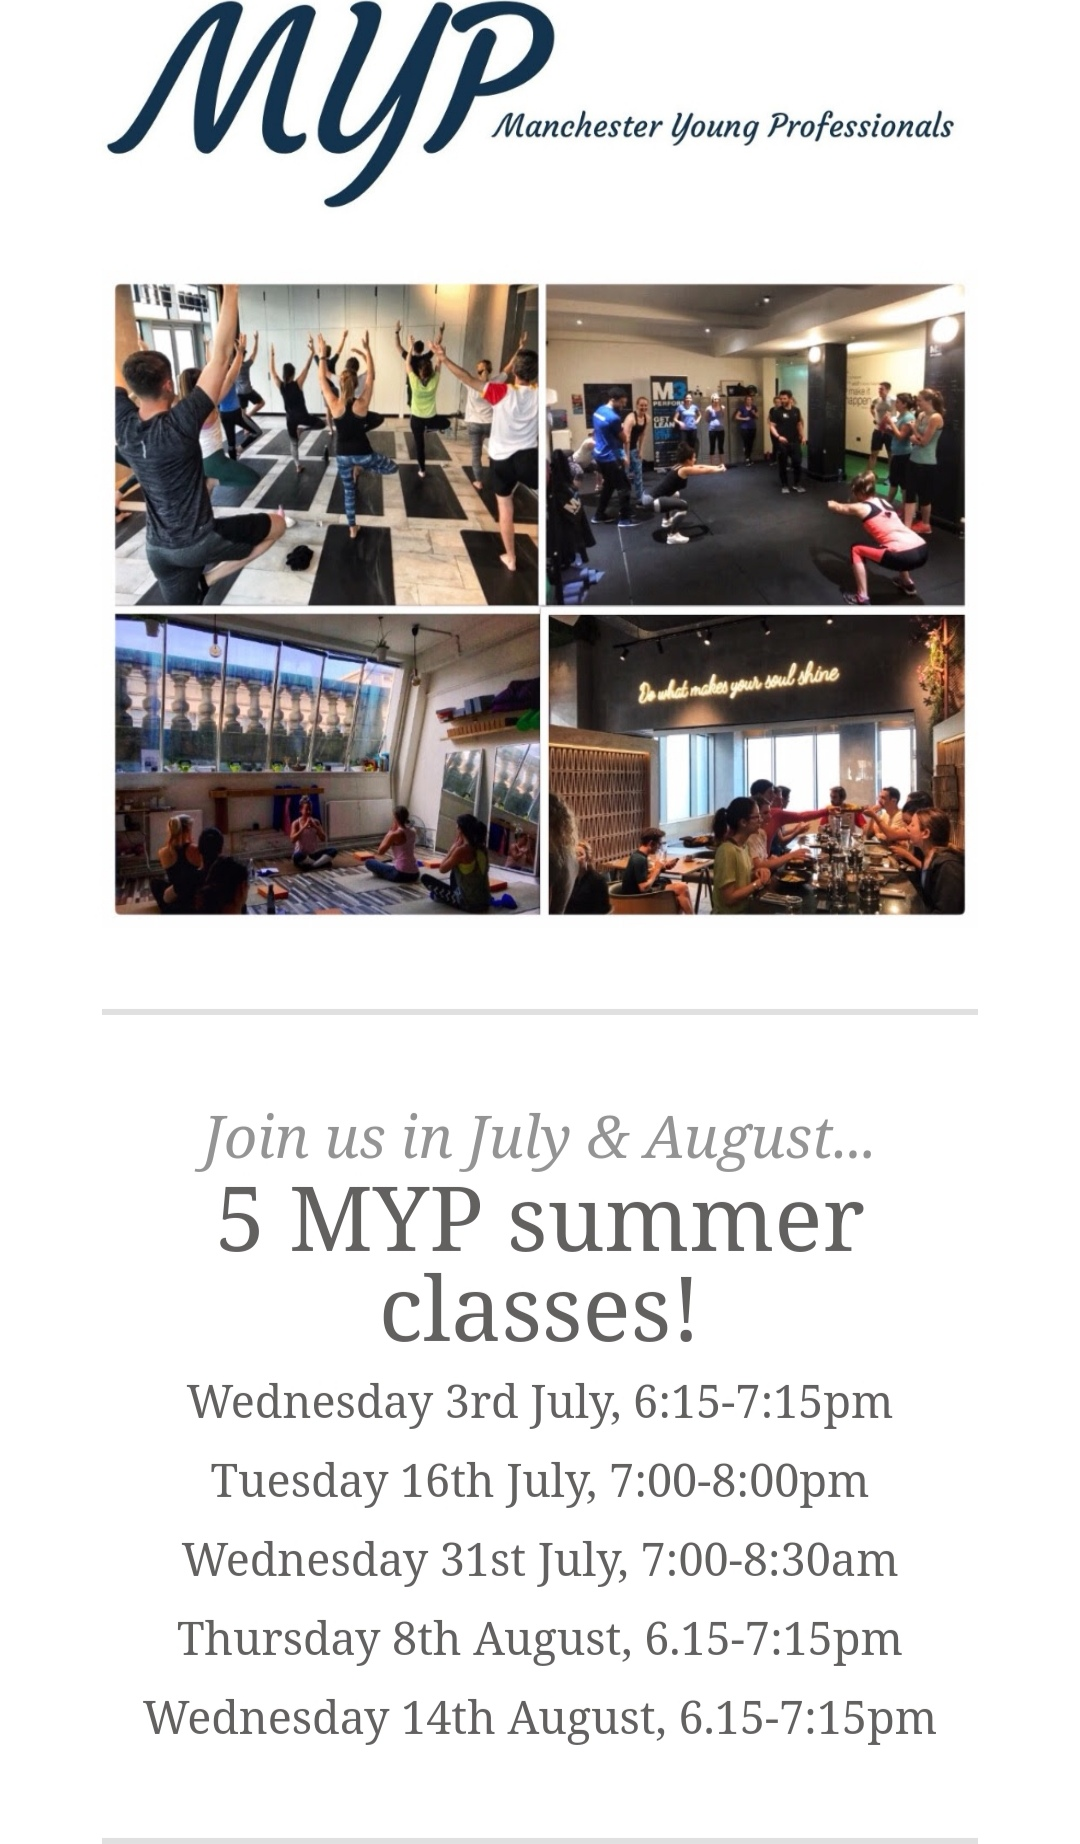 MYP - Pilates events